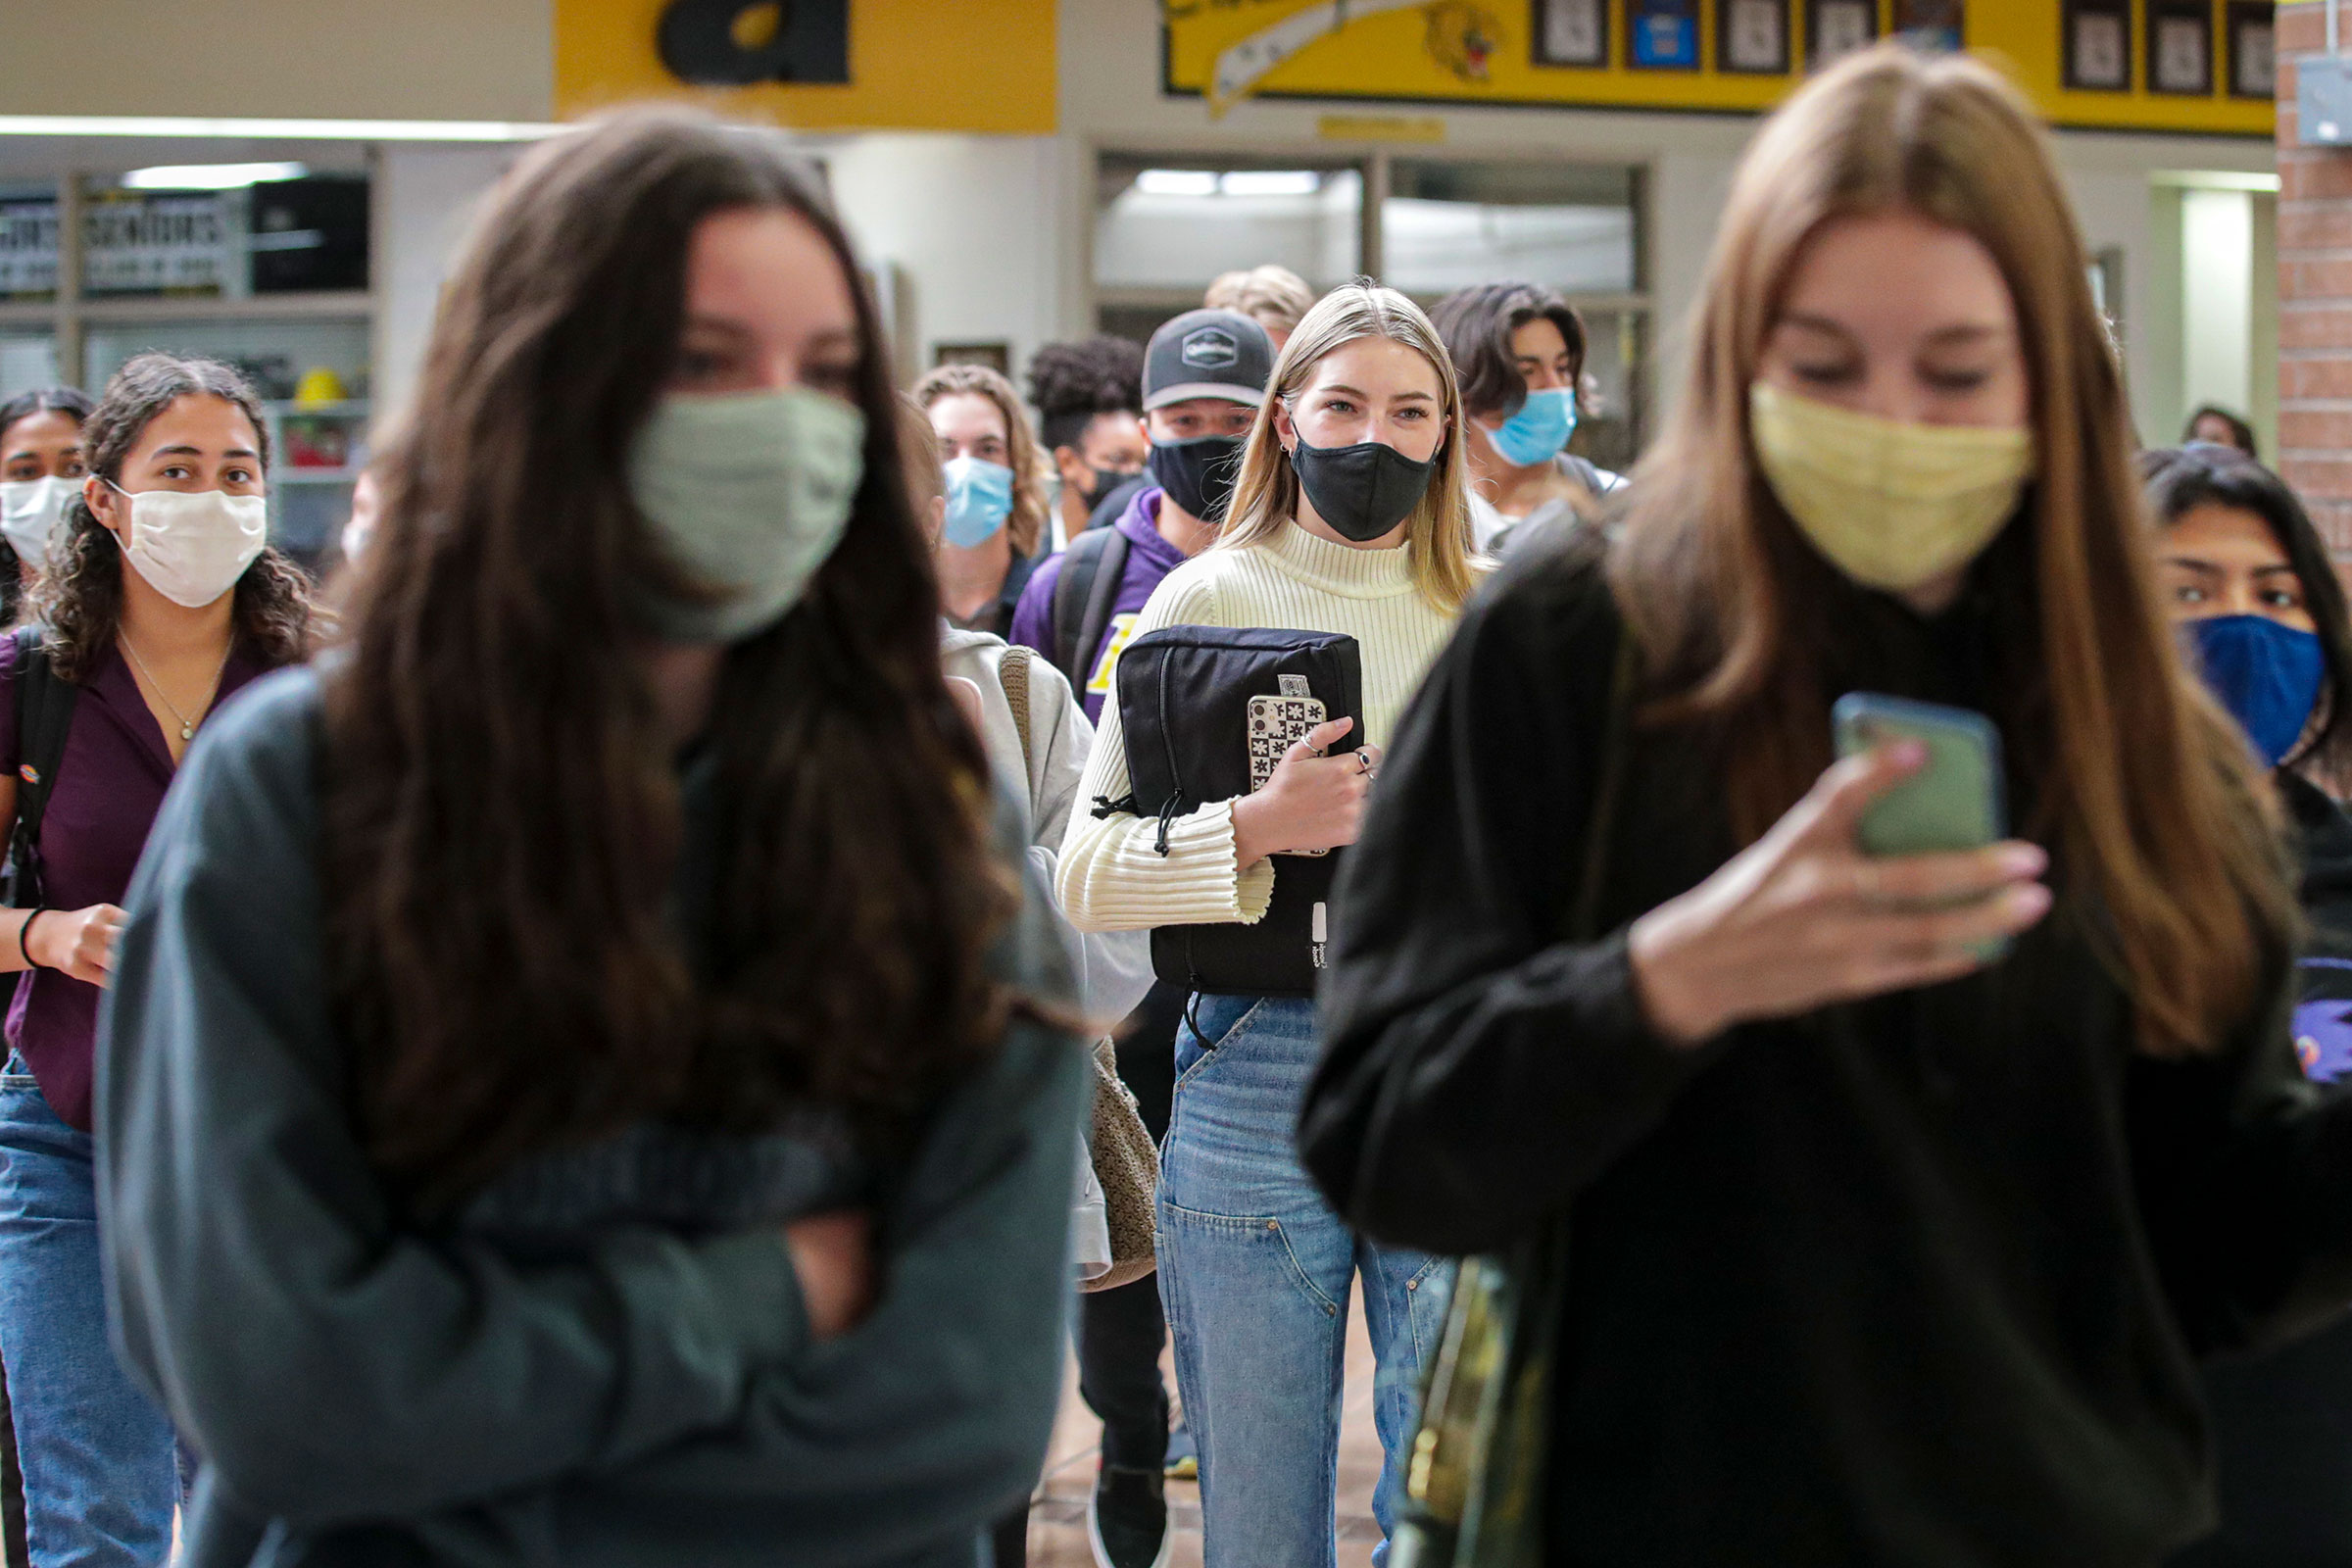 Students at a high school in Mission Viejo, California, on April 27.